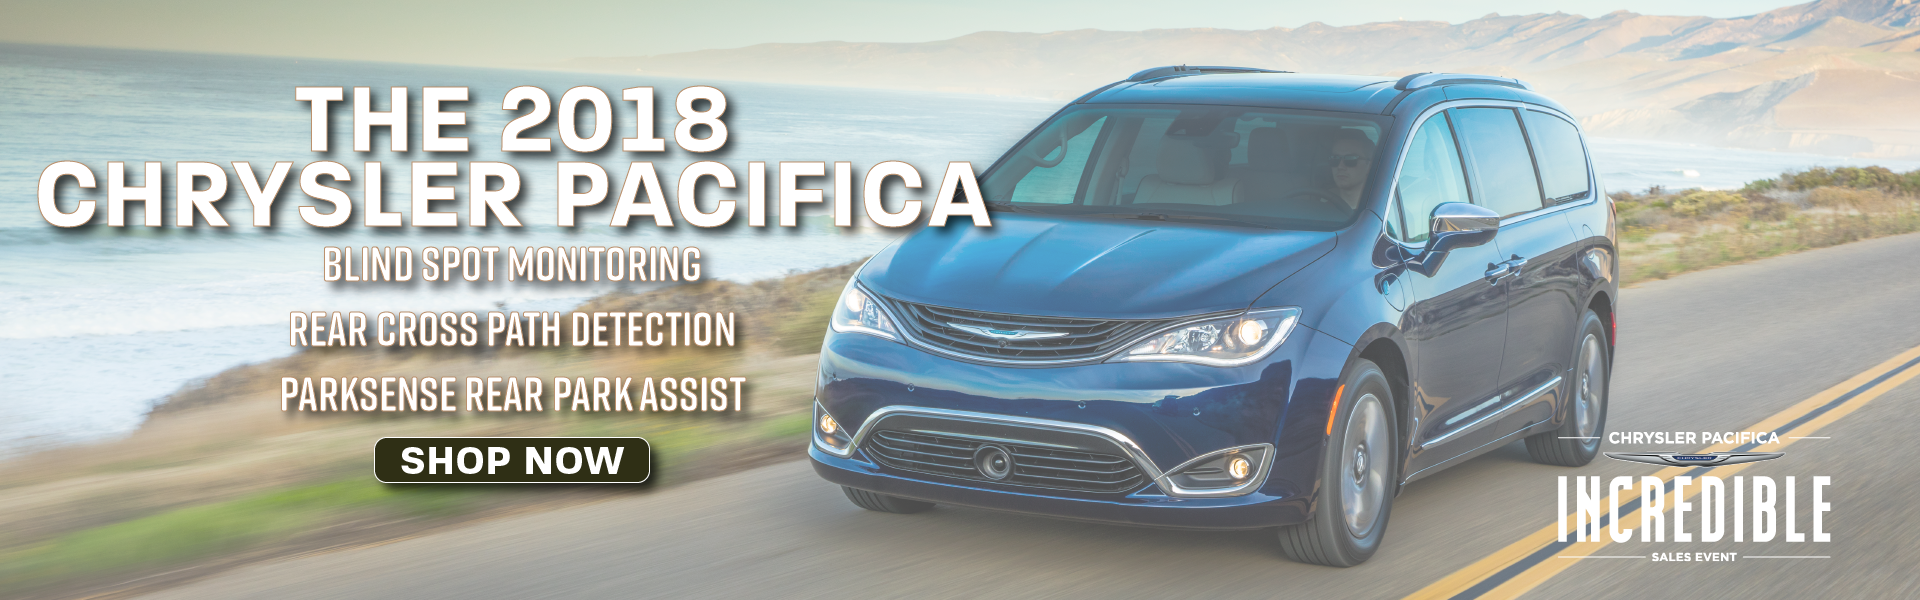 2018 Chrysler Pacifica Banner